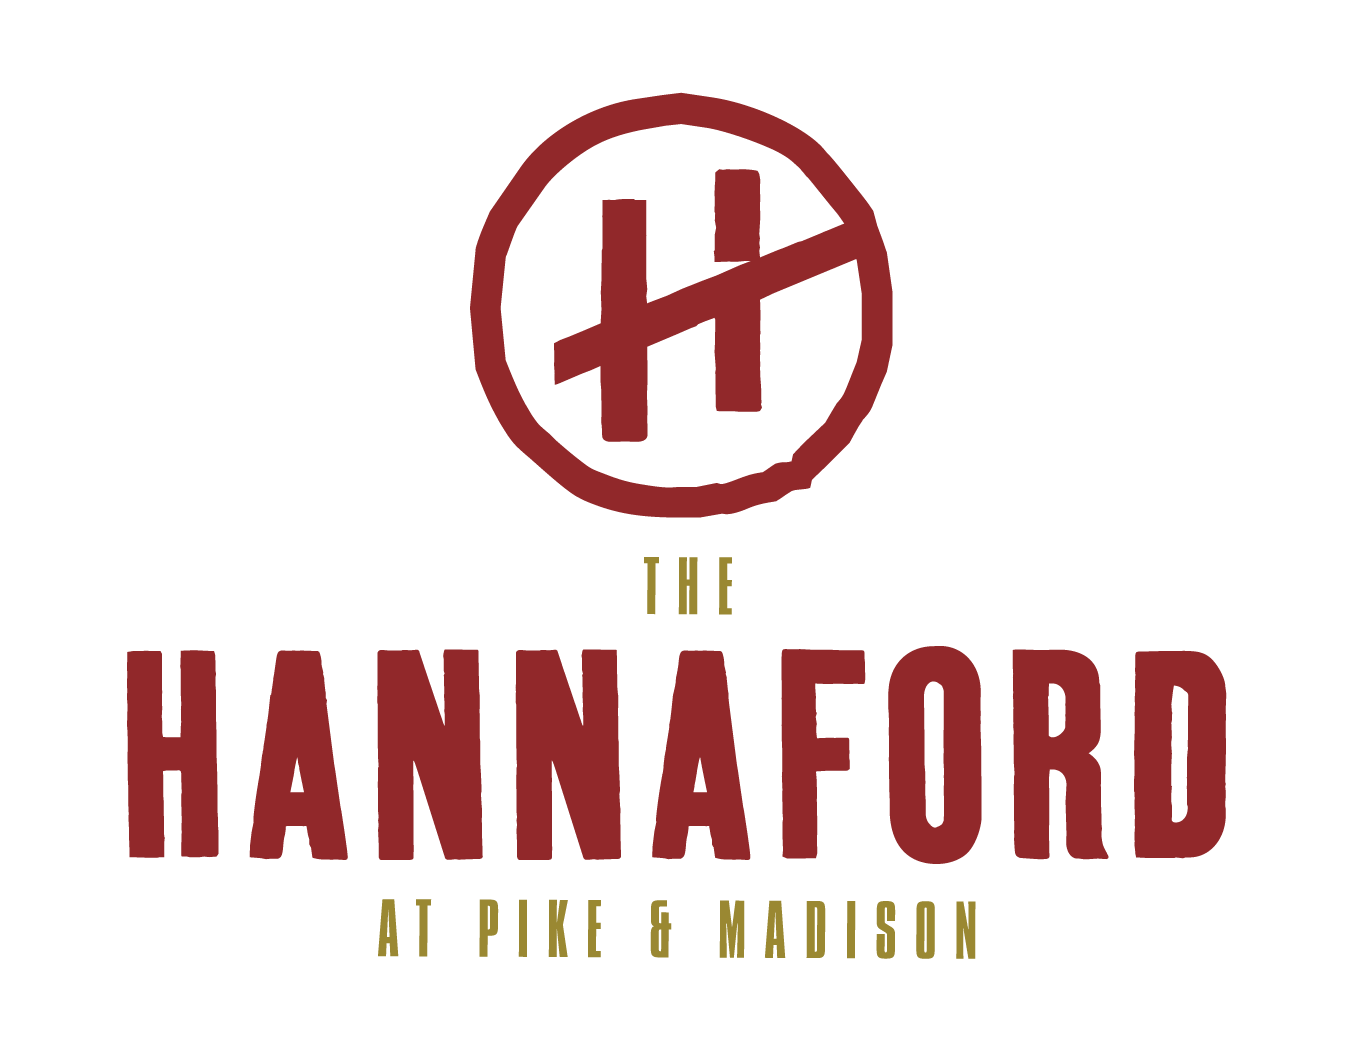 The Hannaford at Pike + Madison